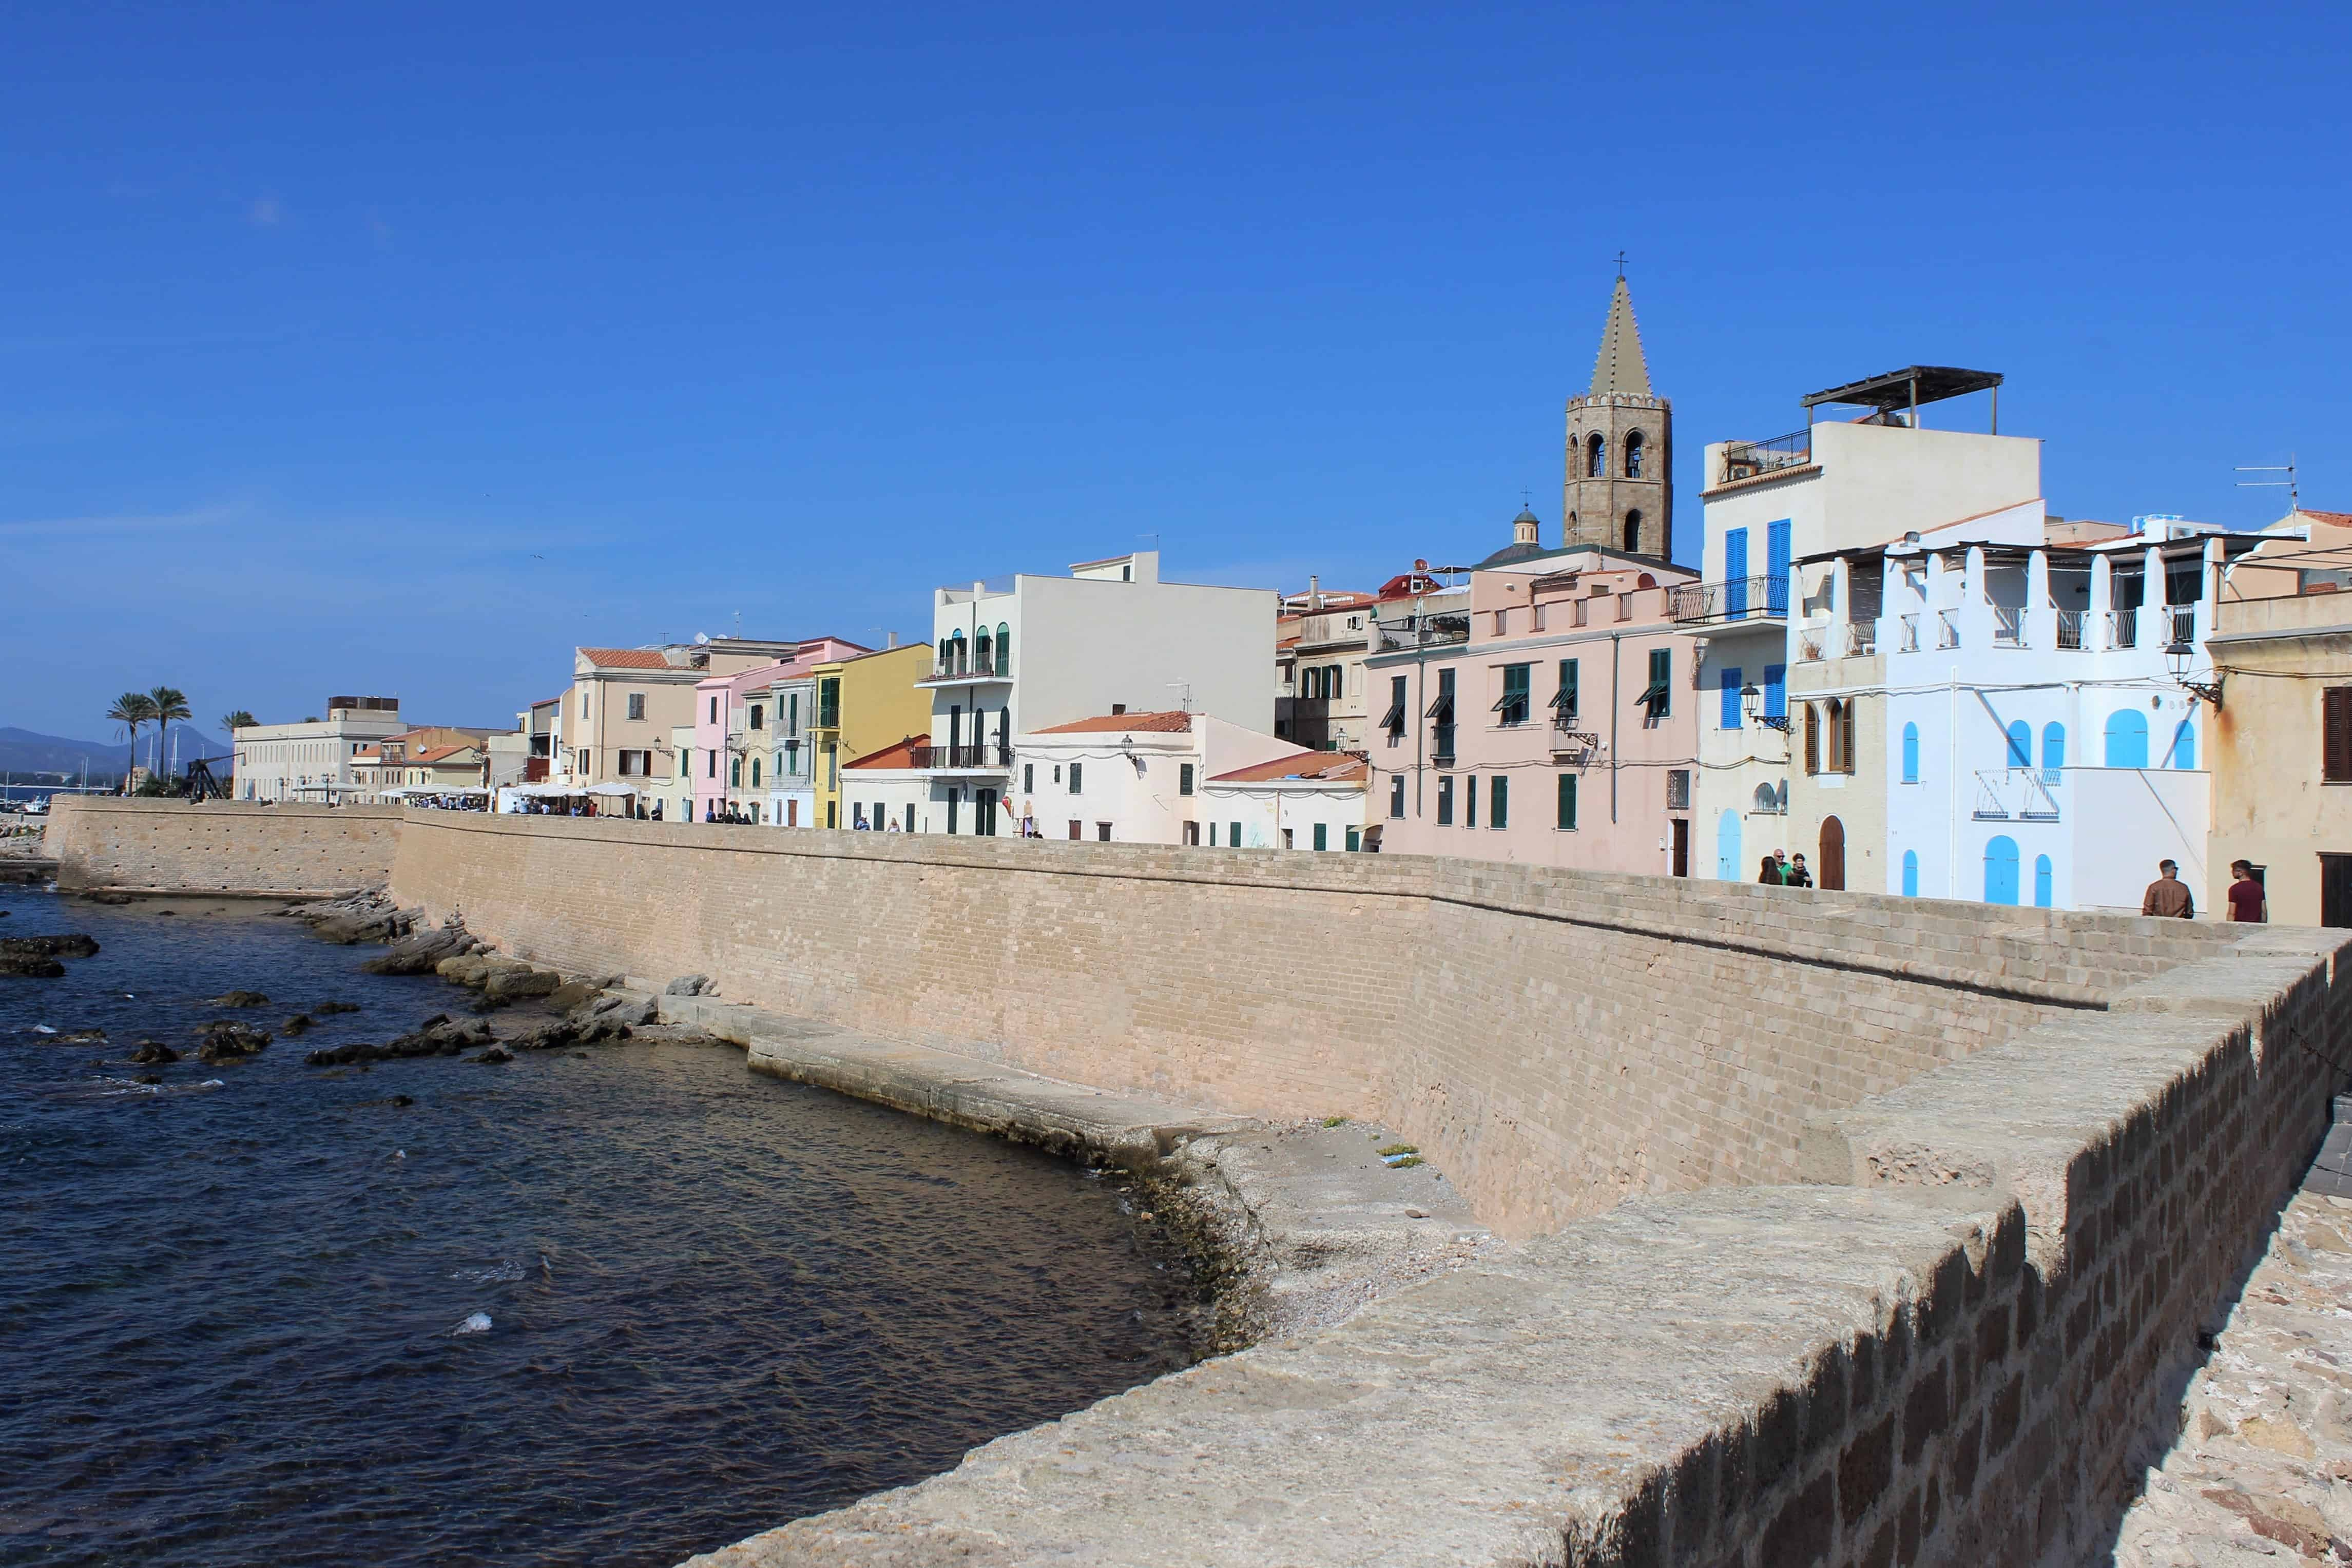 The Best Things to do in Alghero, Sardinia